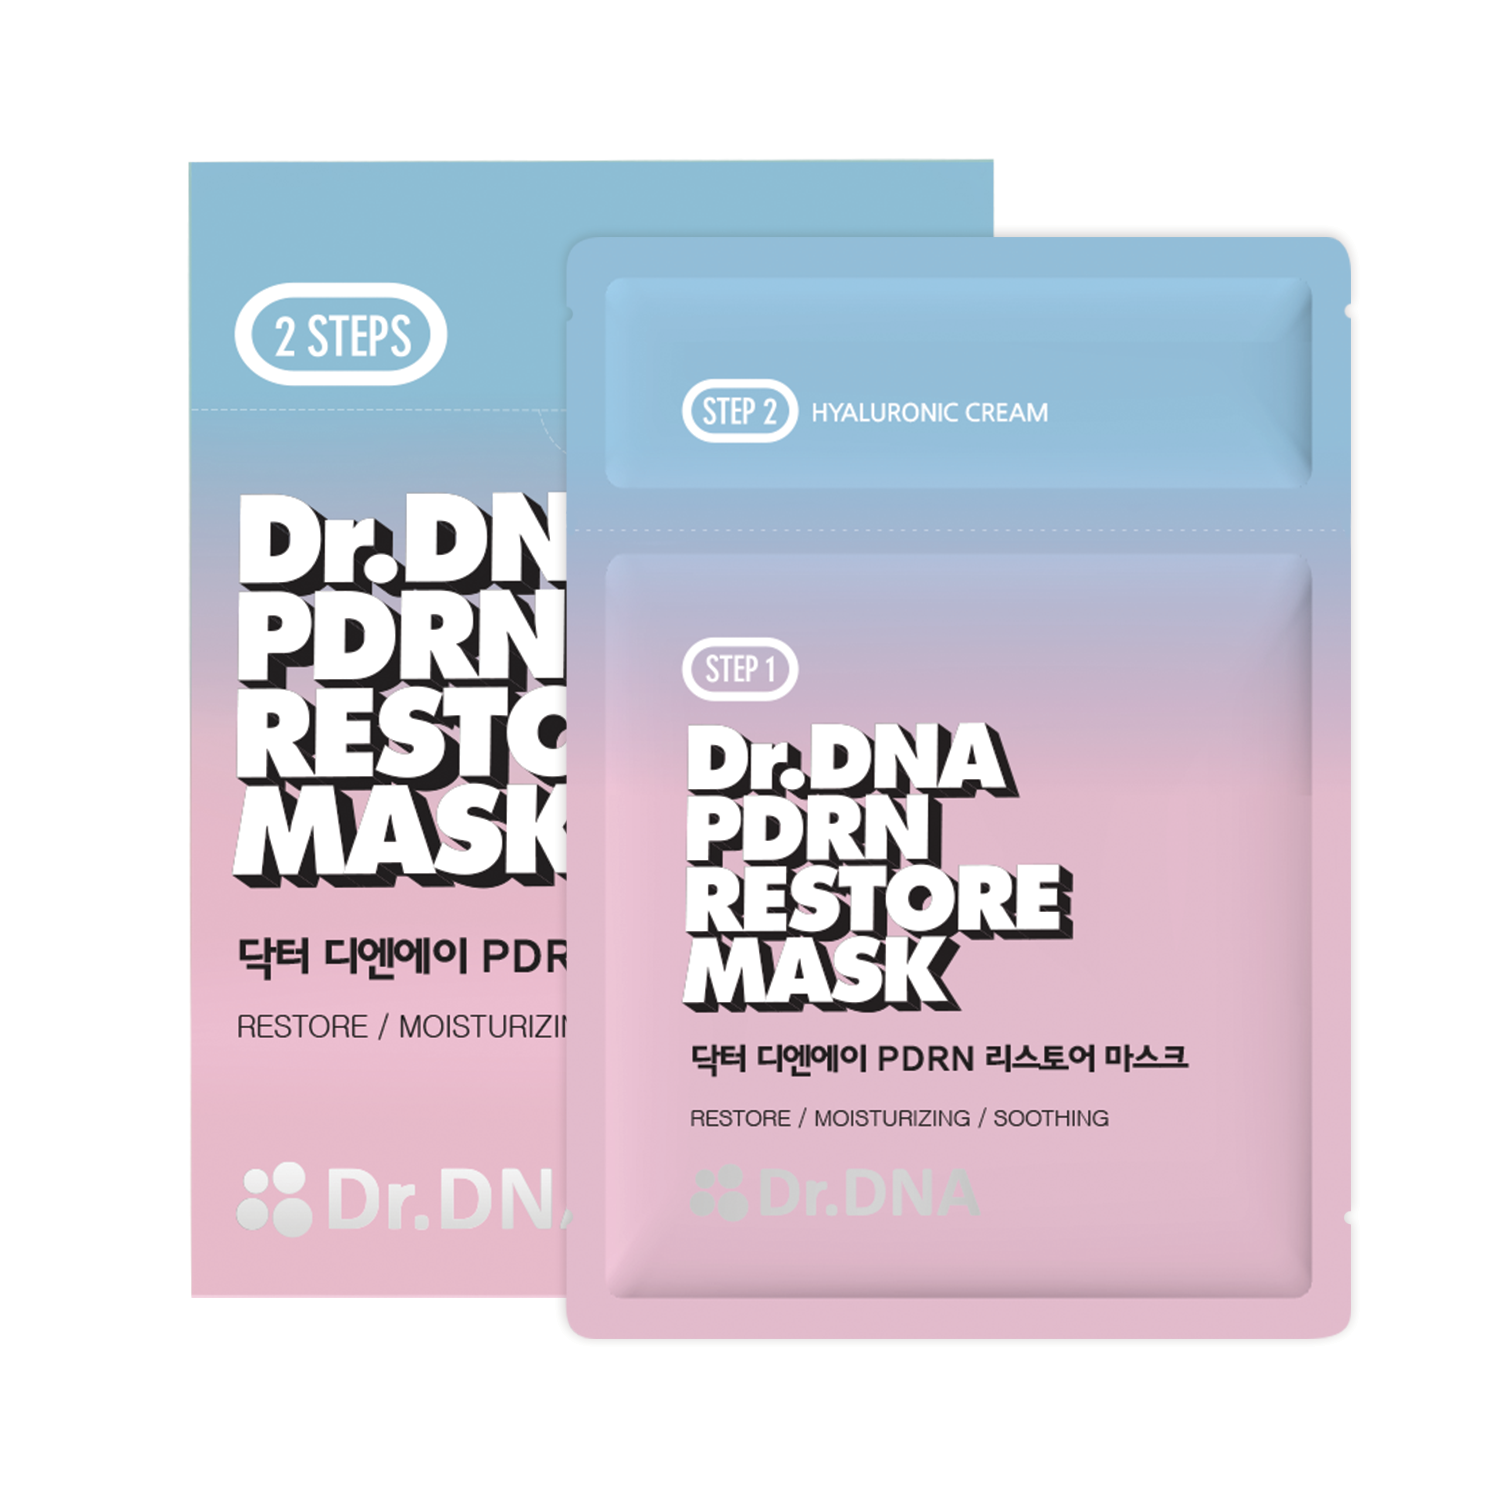 Dr.DNA PDRN RESTORE MASK